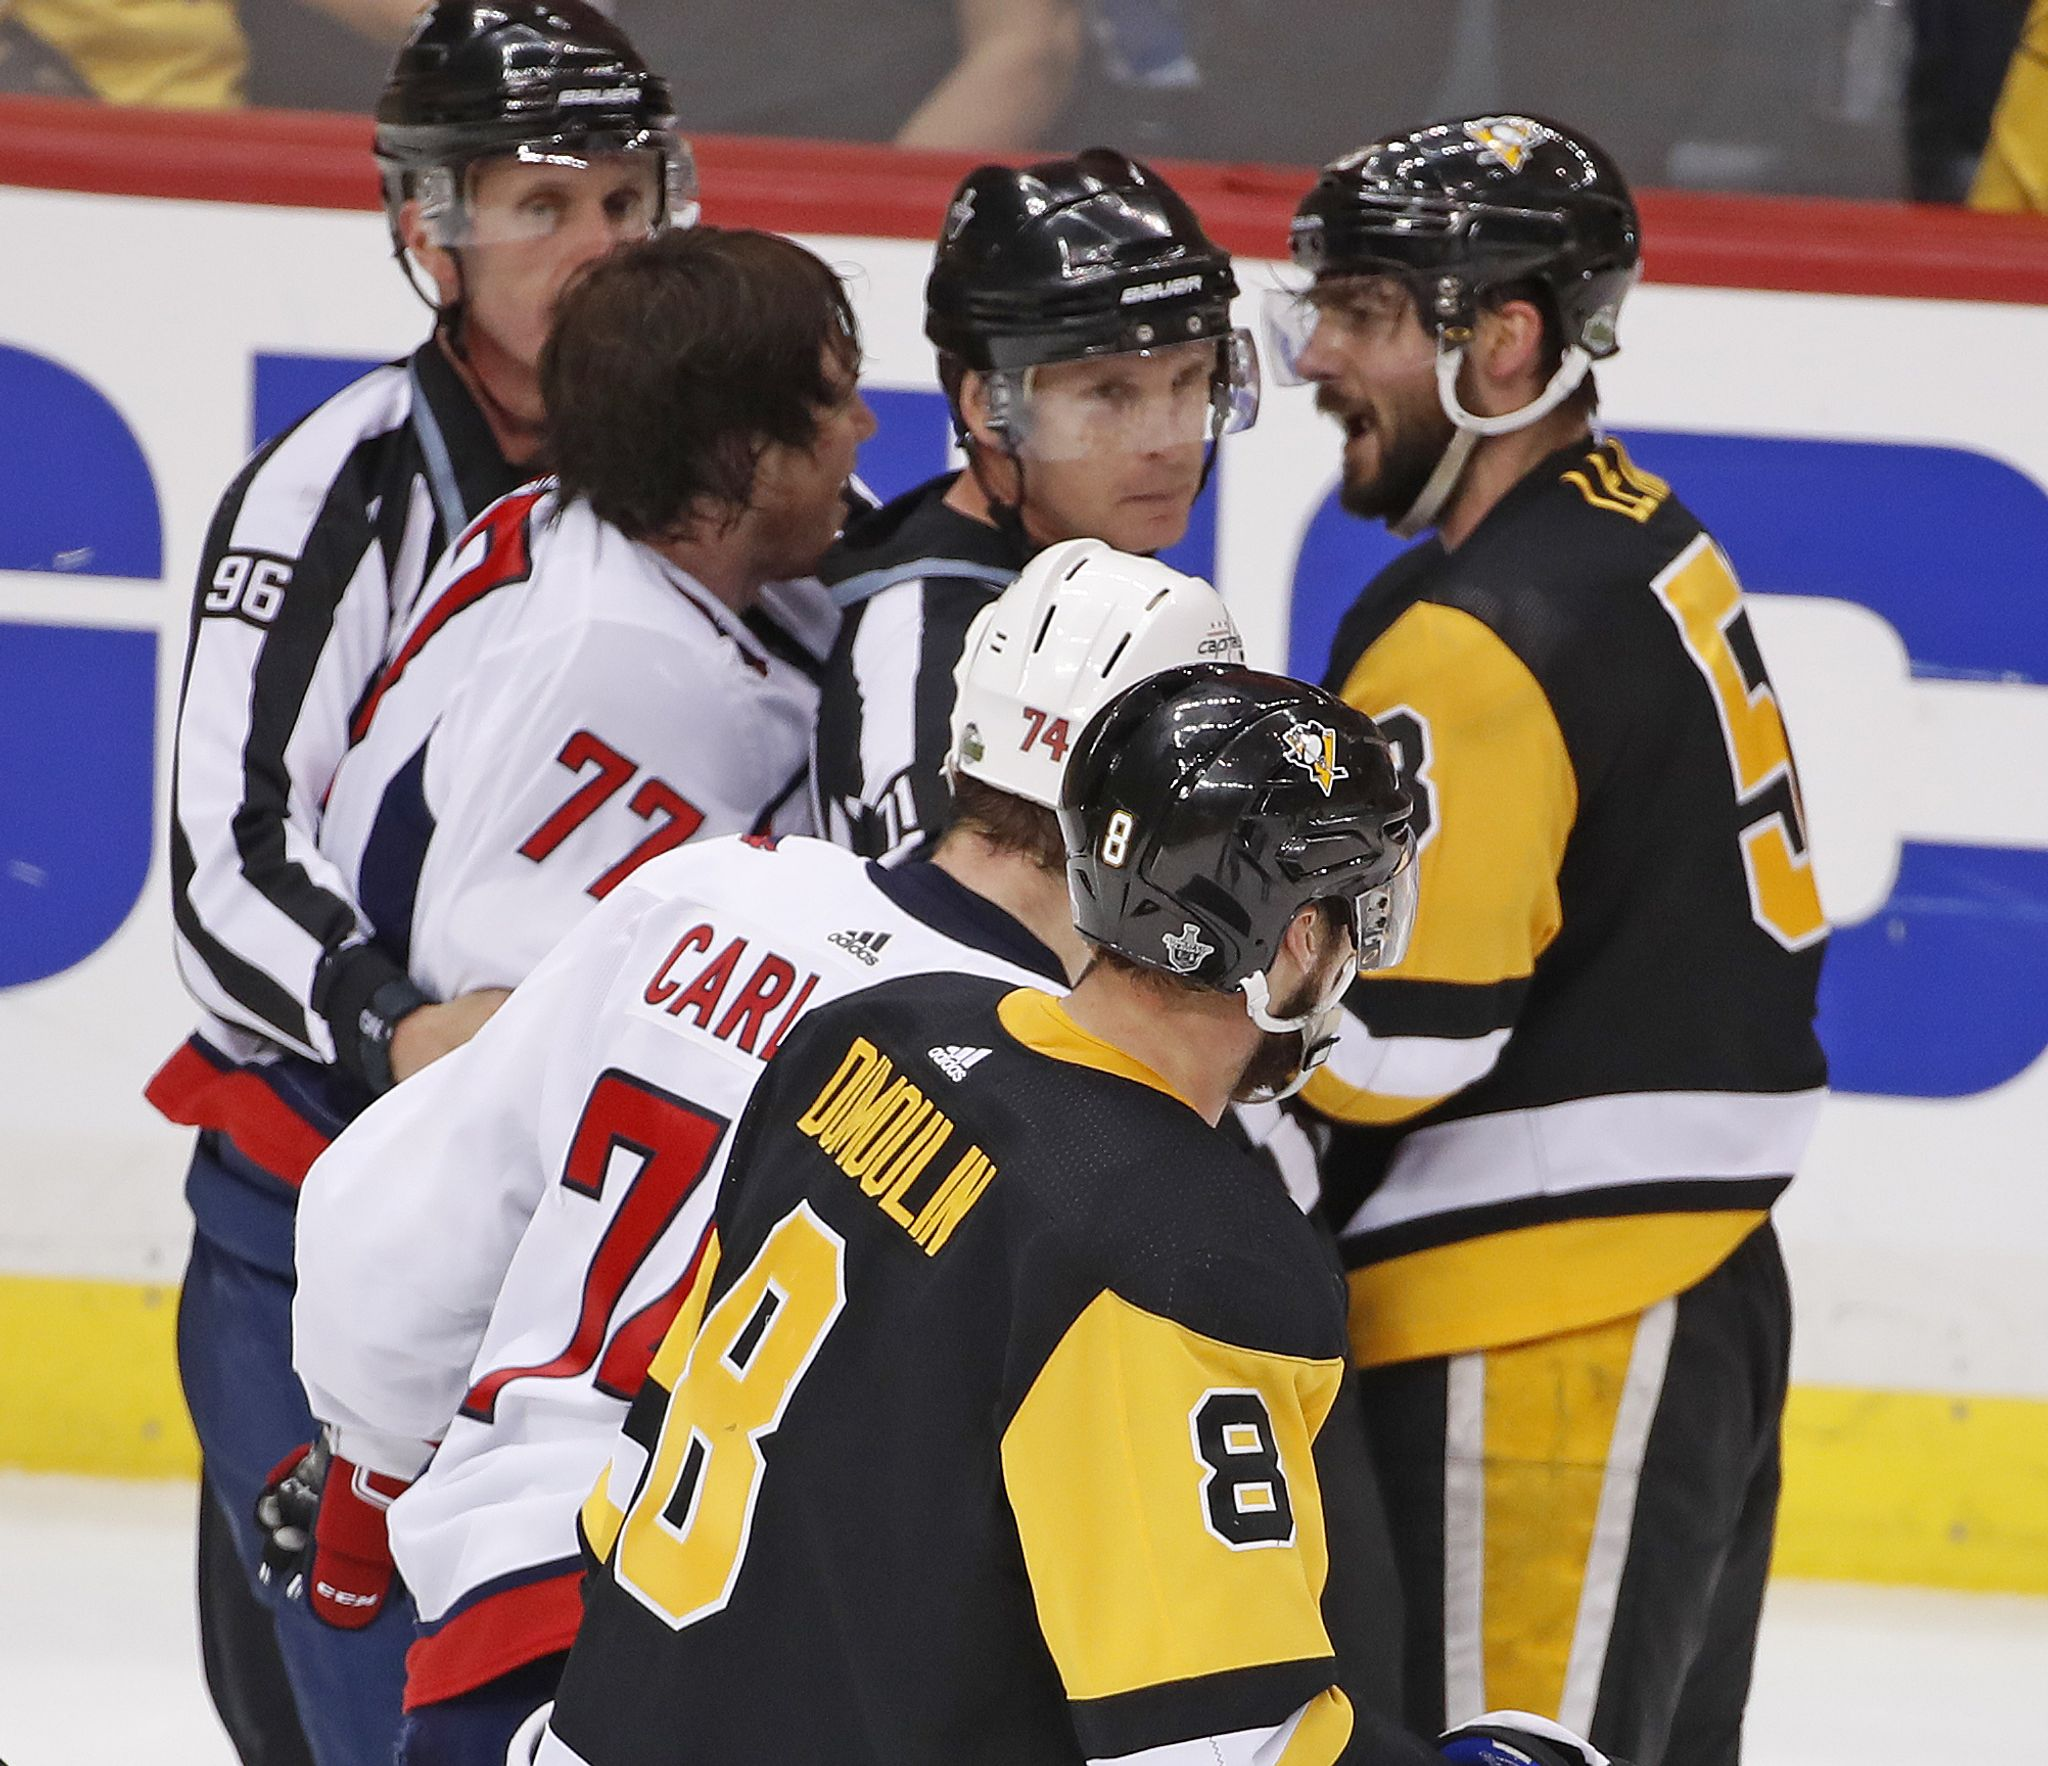 Capitals Game 5 vs. Penguins: How to watch and what to watch for - Washington Ti...